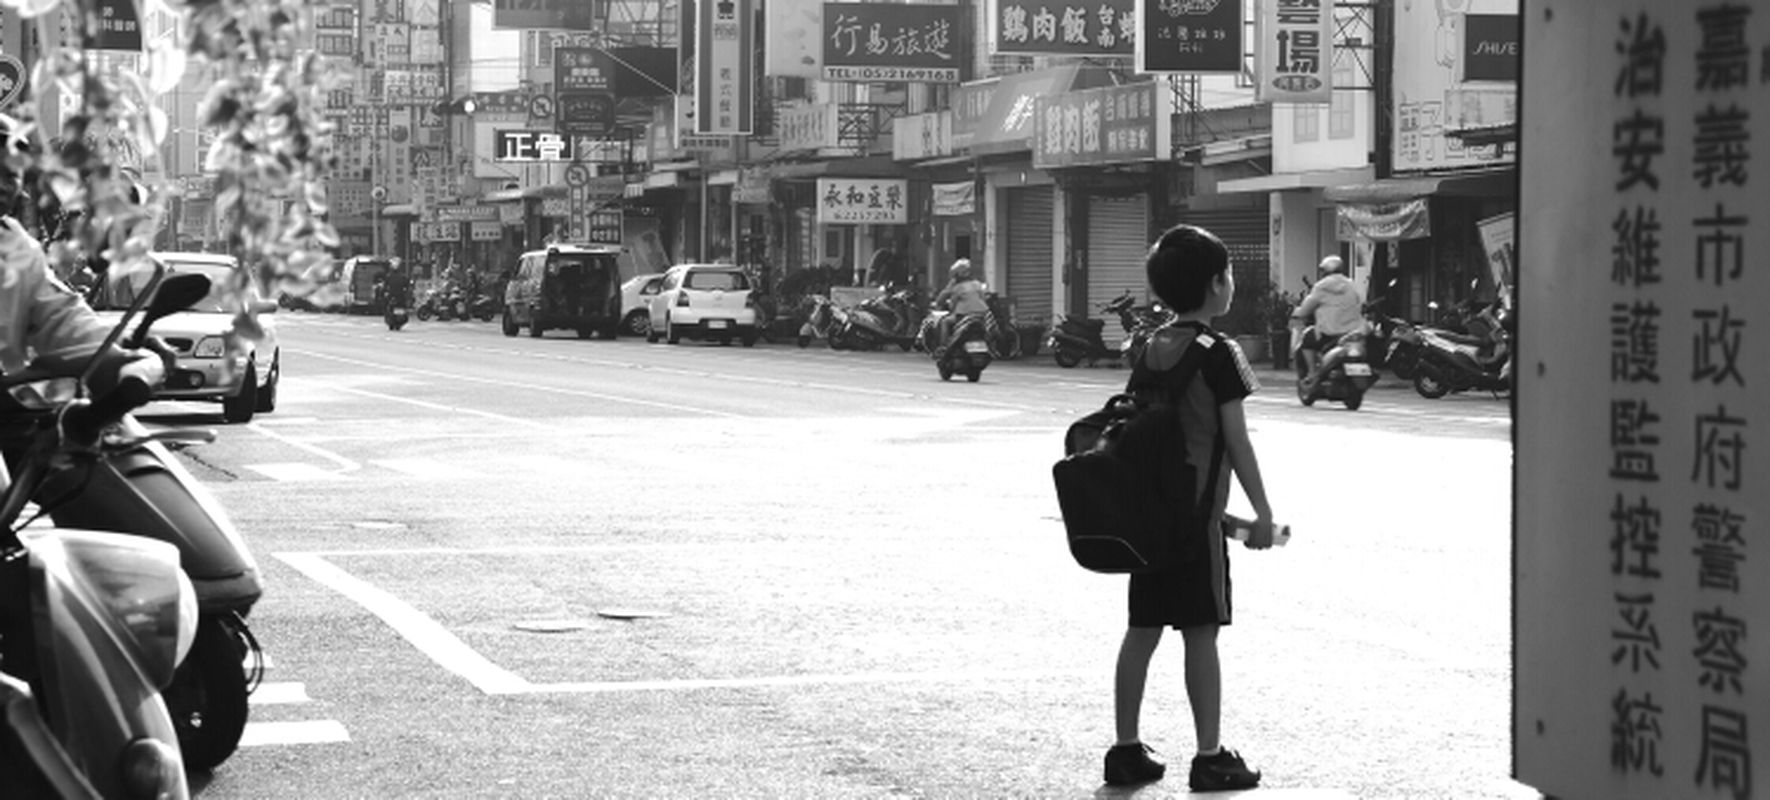 what i saw streetphotography blackandwhite The view and the spirit of Taiwan 台灣景 台灣情 by 陳 馴仁